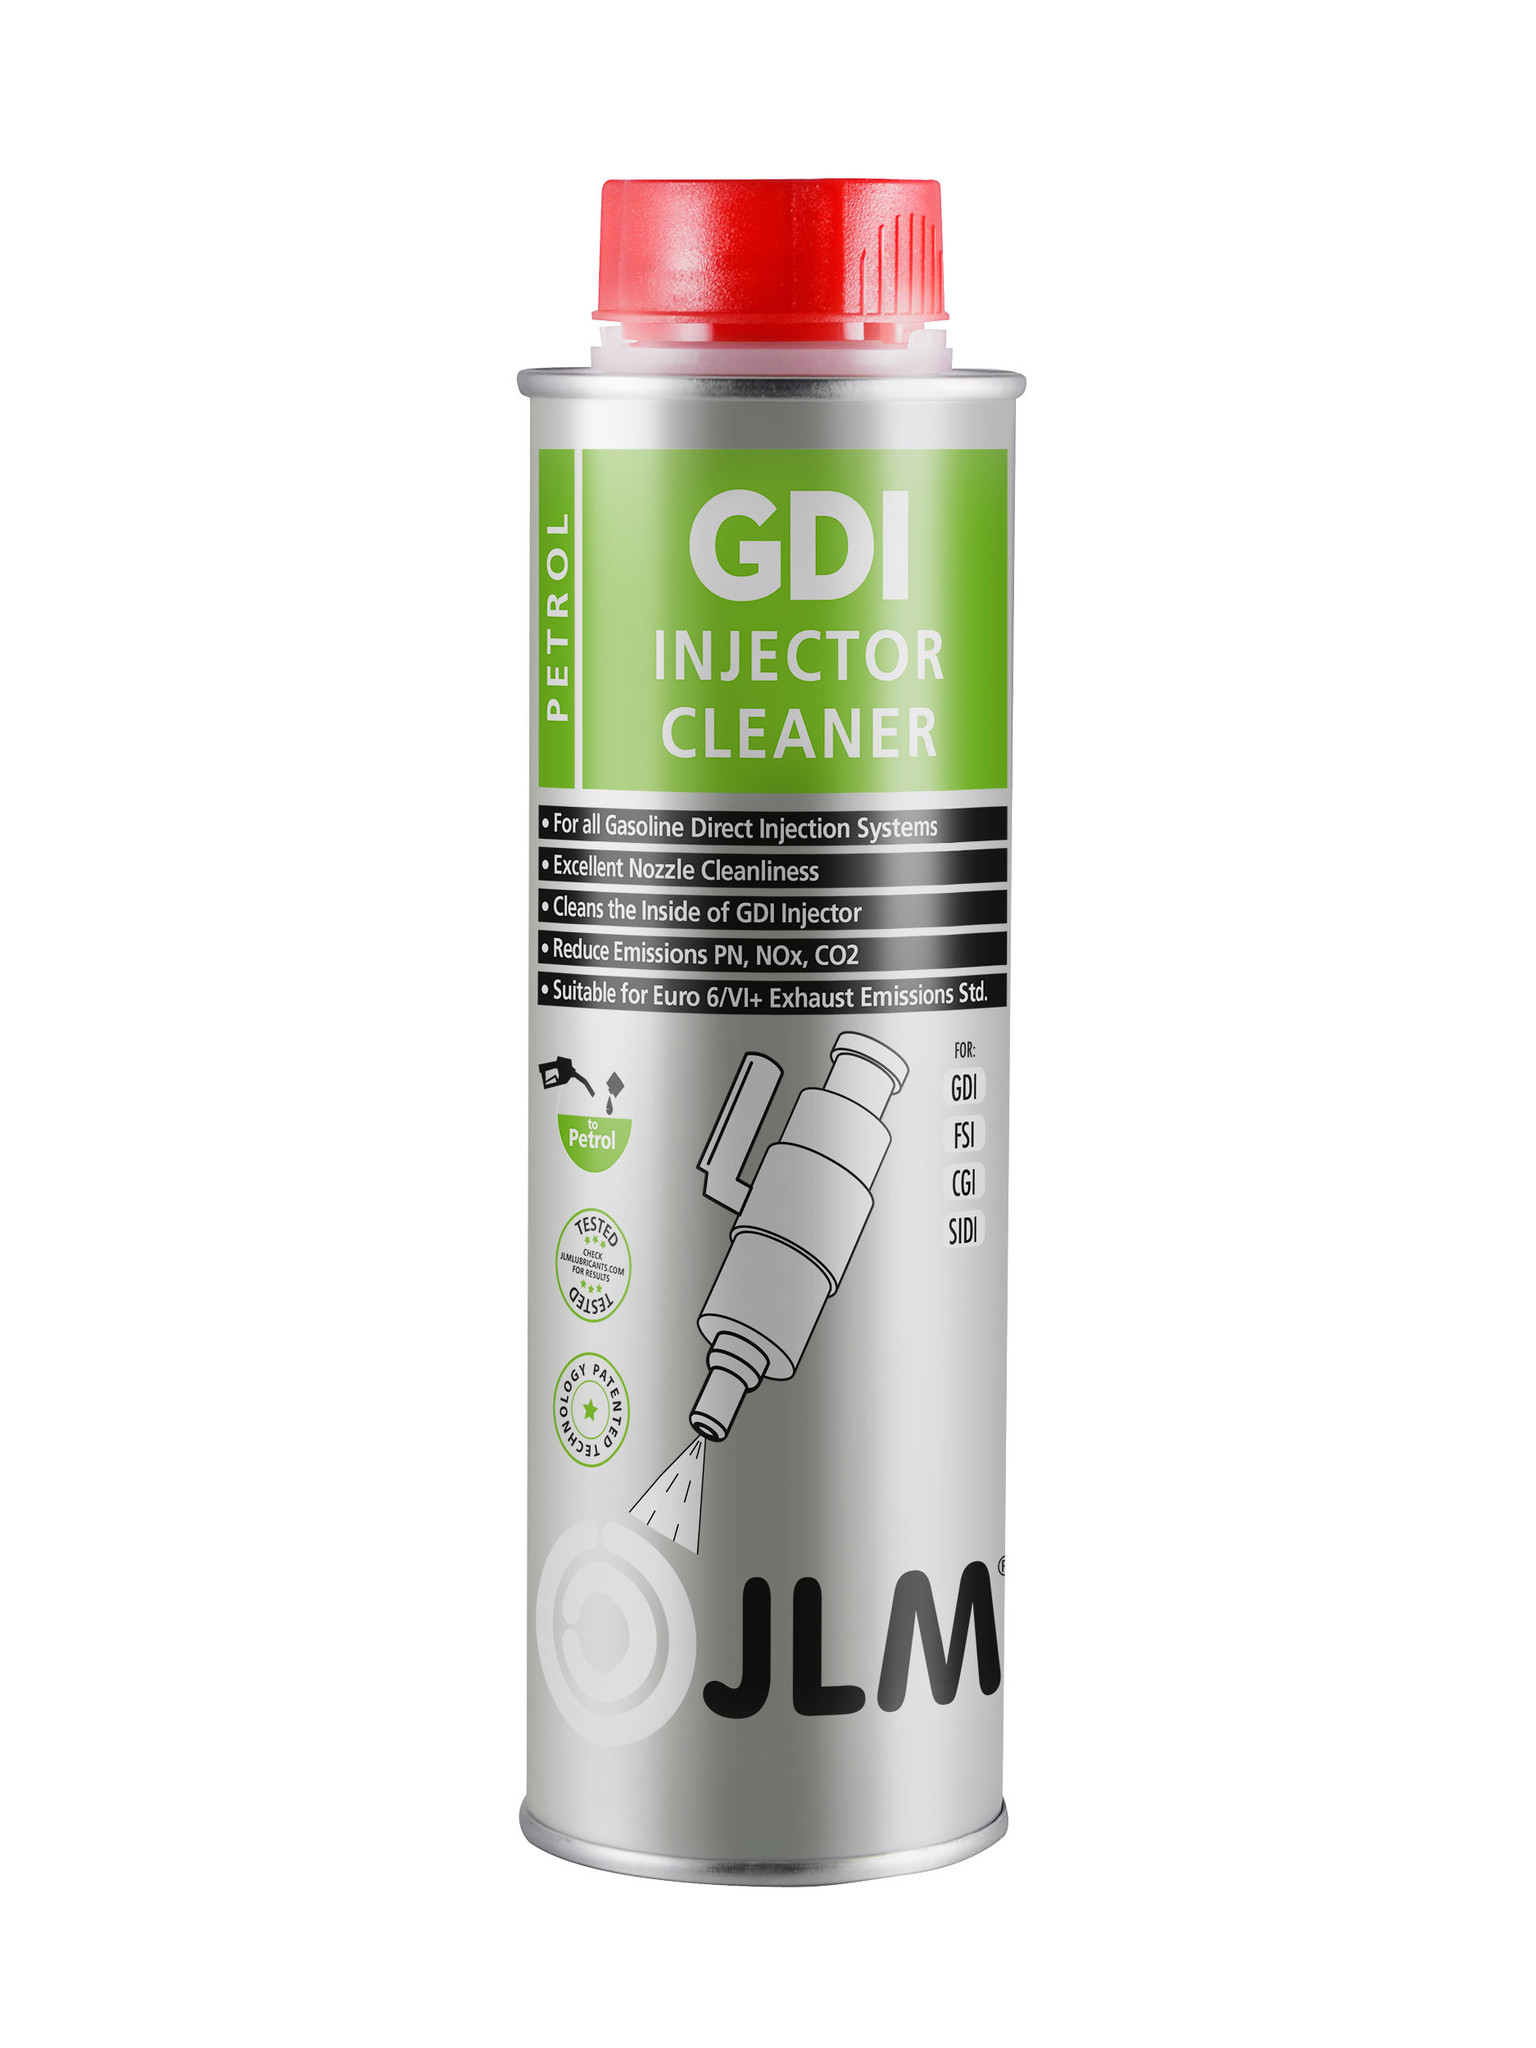 JLM Lubricants JLM Petrol GDI Injector Cleaner 250ml